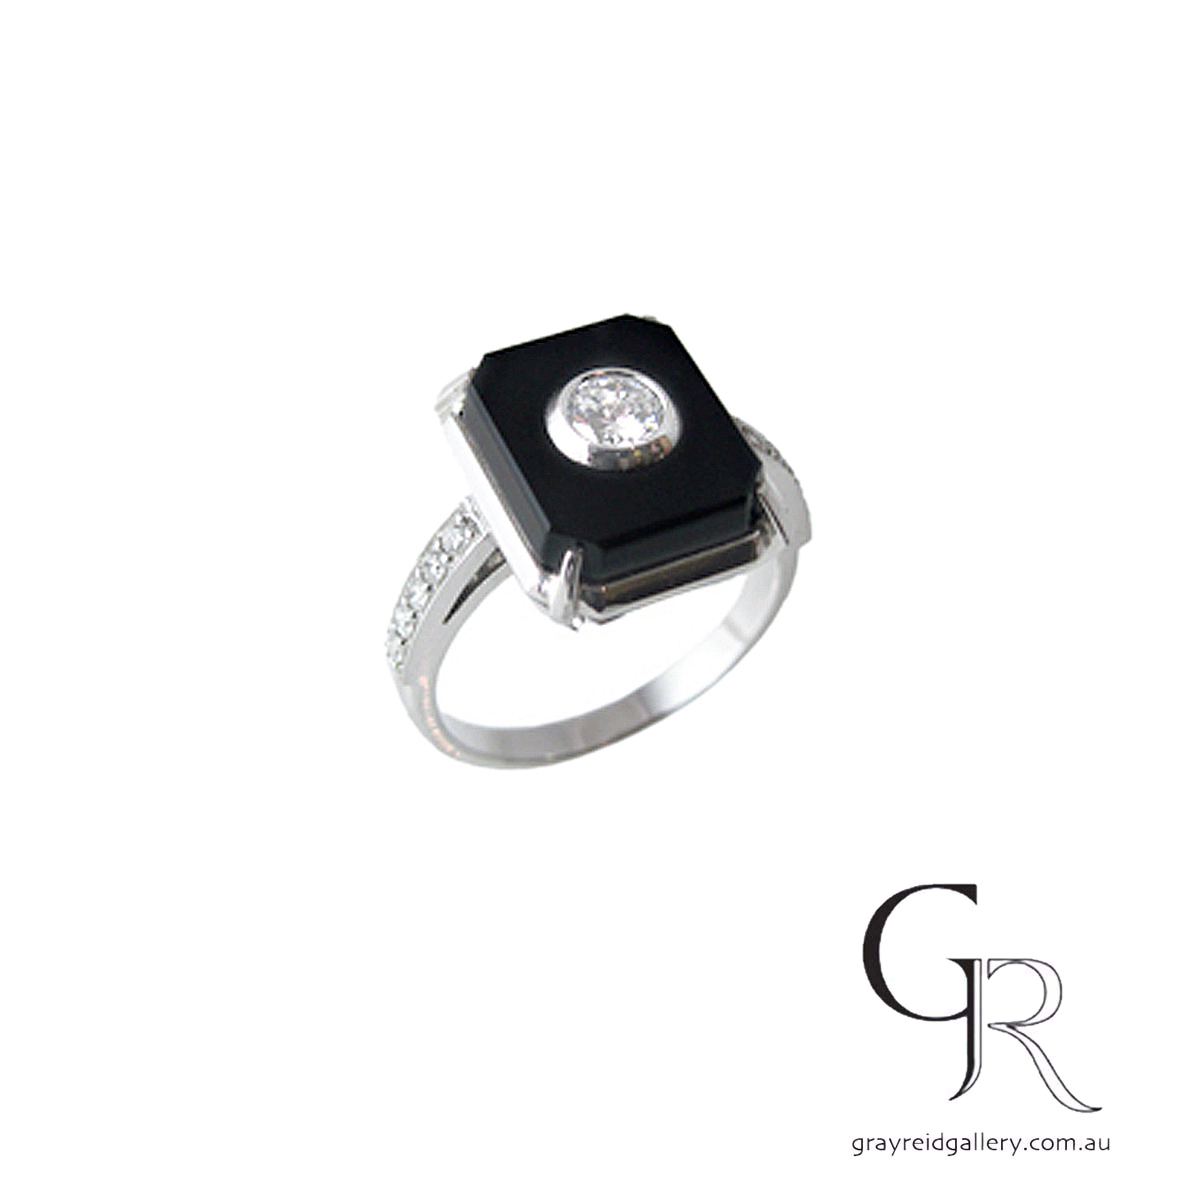 Diamond & Onyx Rings Melbourne Gray Reid Gallery.jpg